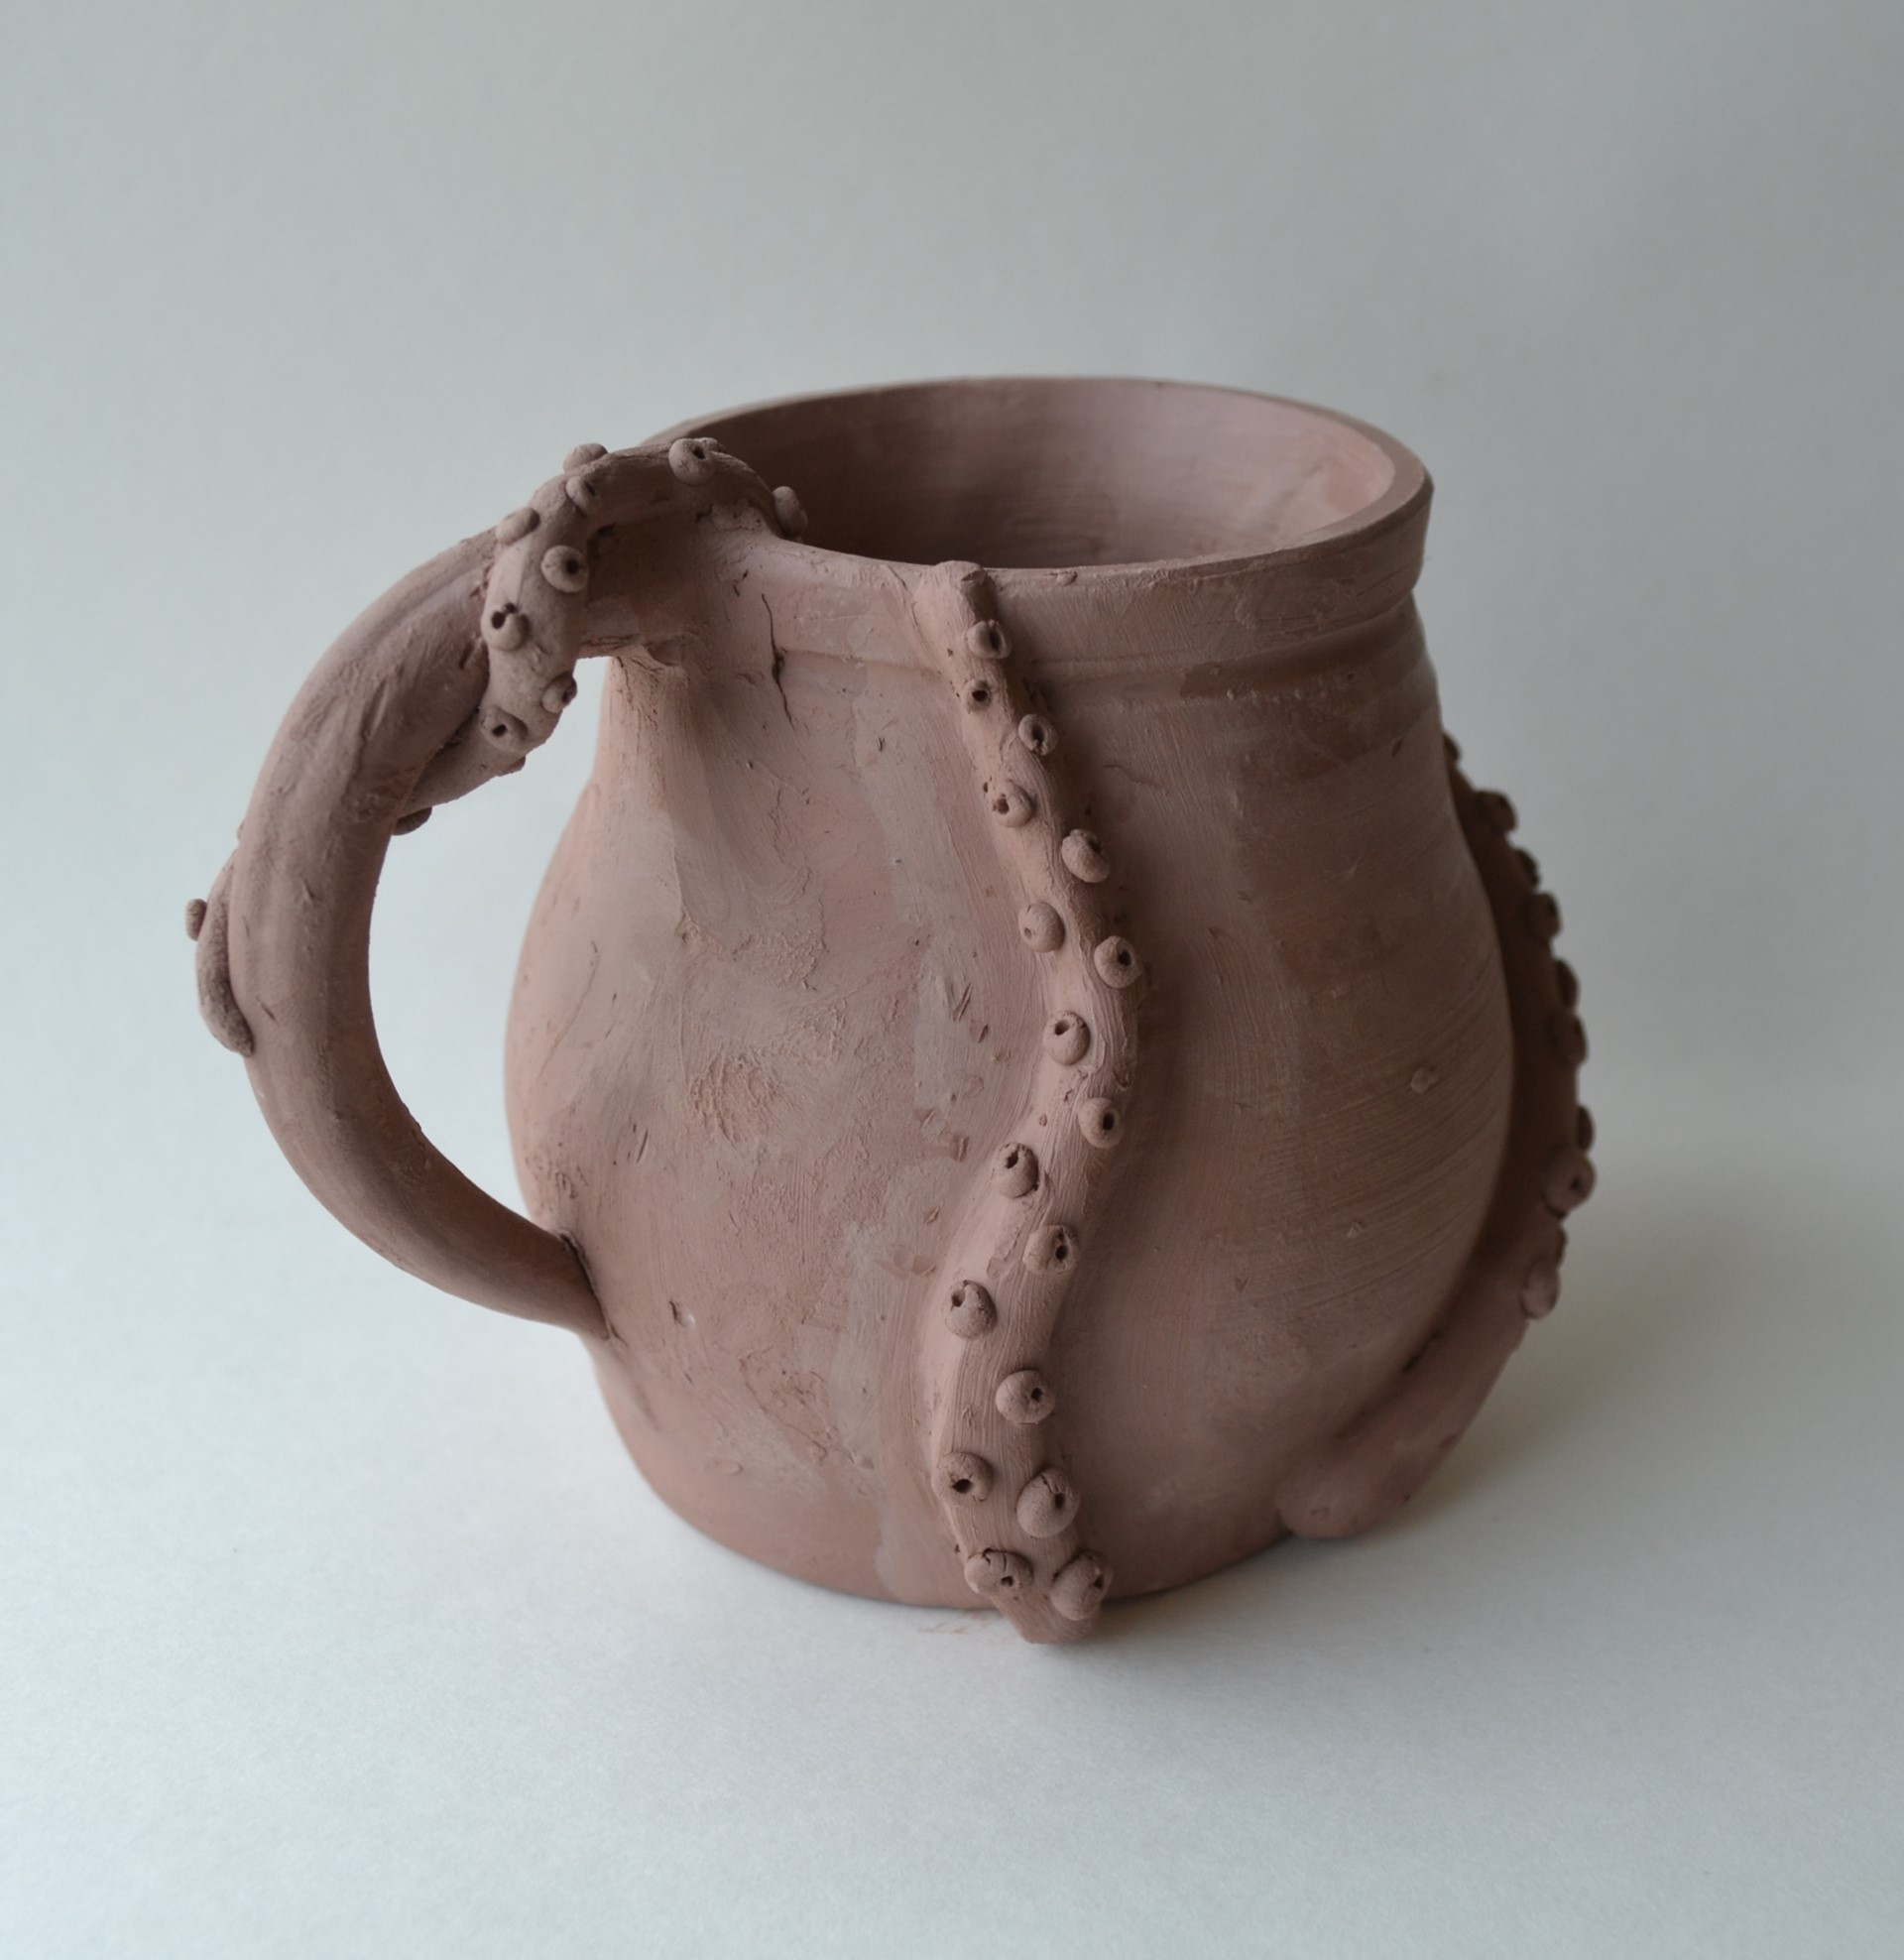 Haven Coons, Octopus Mug, greenware, 2006